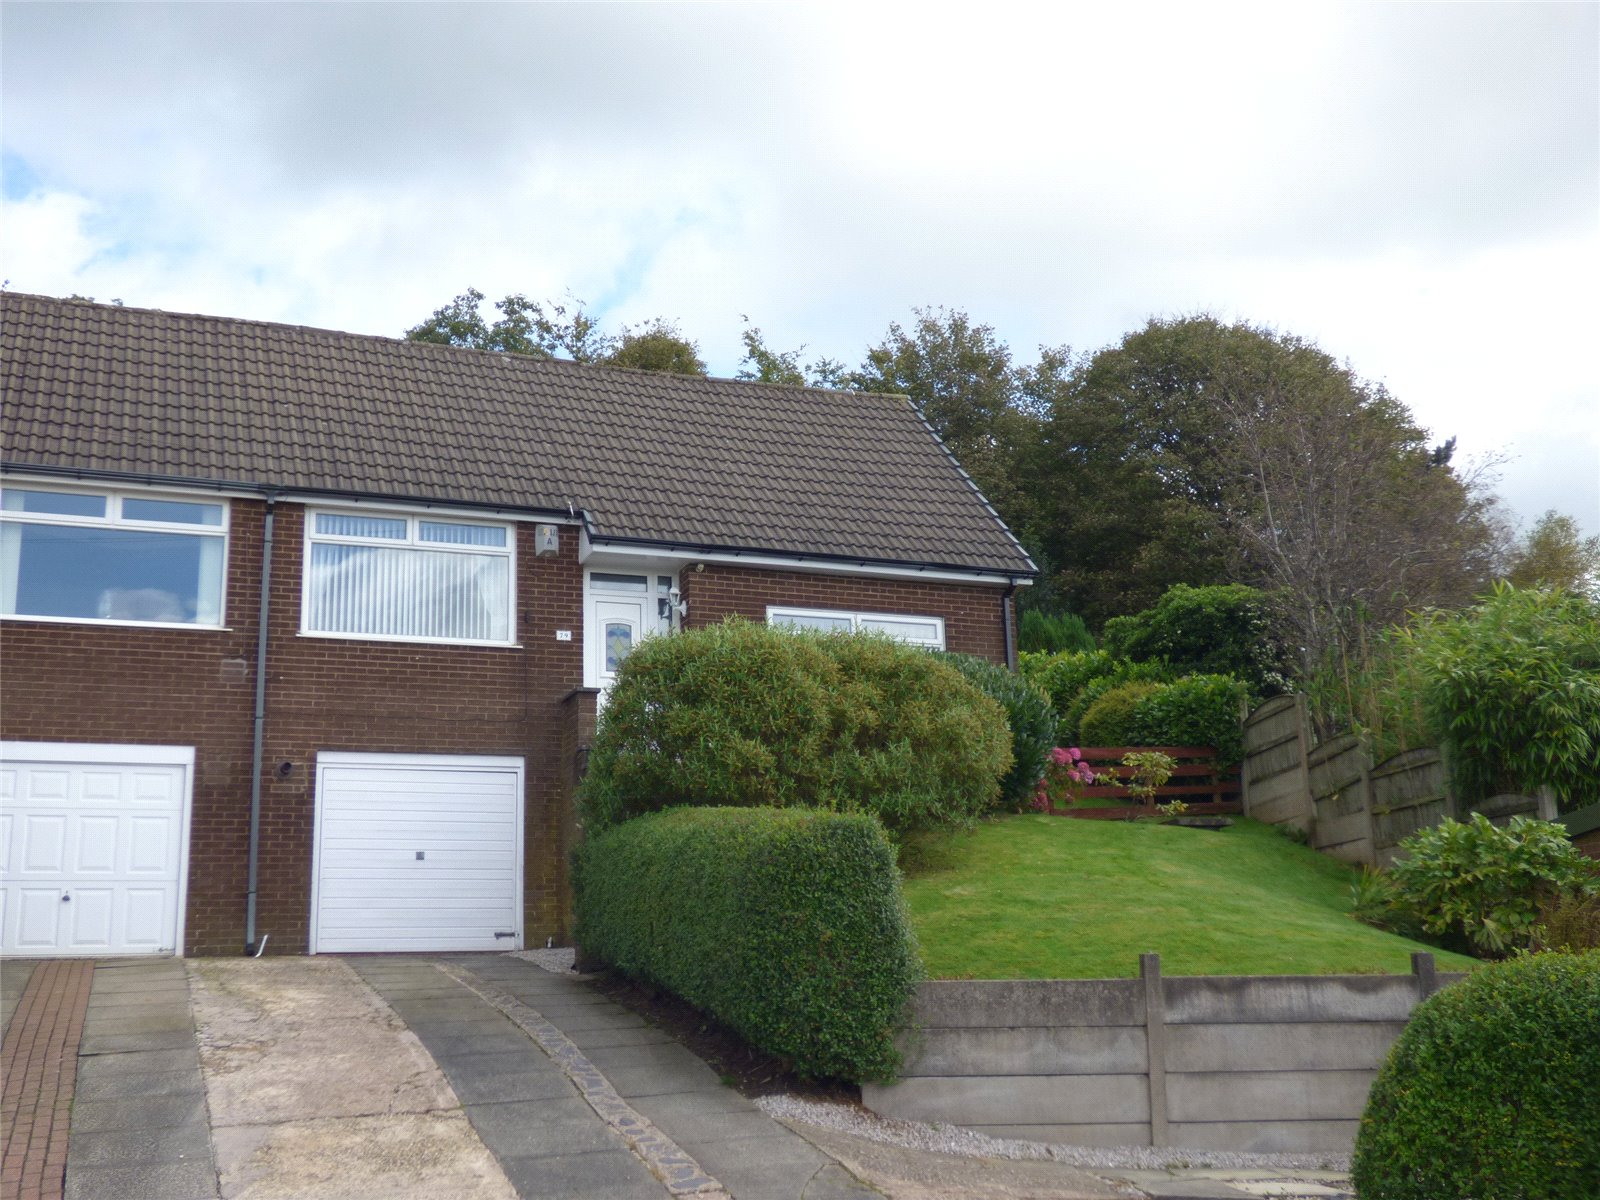 2 Bedrooms Semi Detached House for sale in Dovecote Lane, Lees/Springhead, Oldham, Greater Manchester, OL4